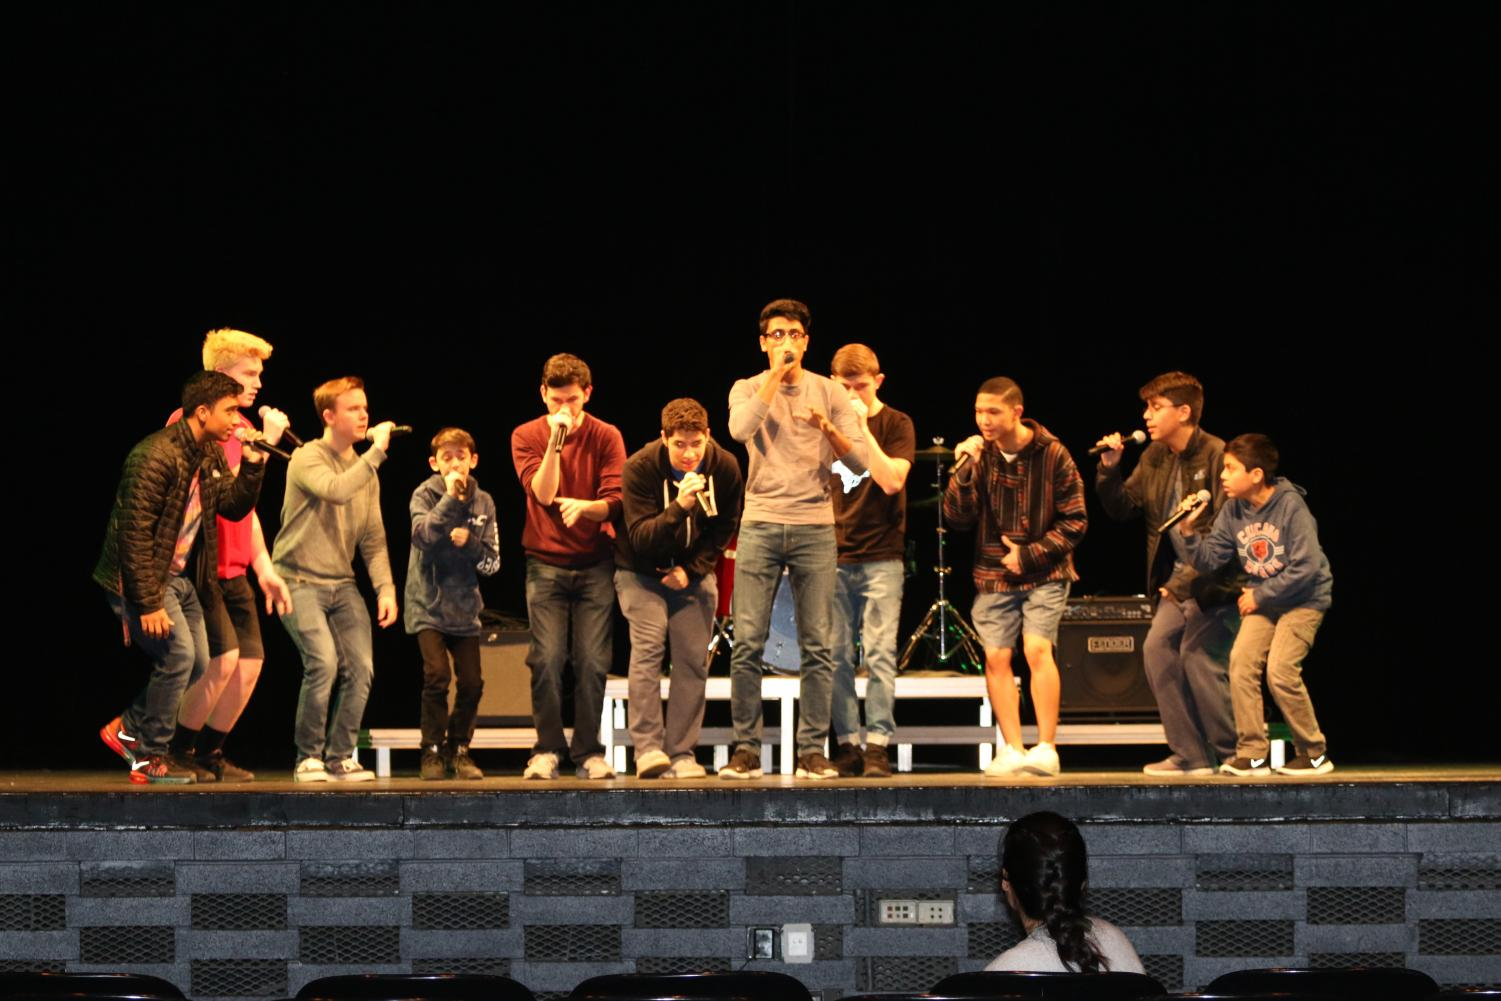 All male acapella group Echo Effect practicing their song